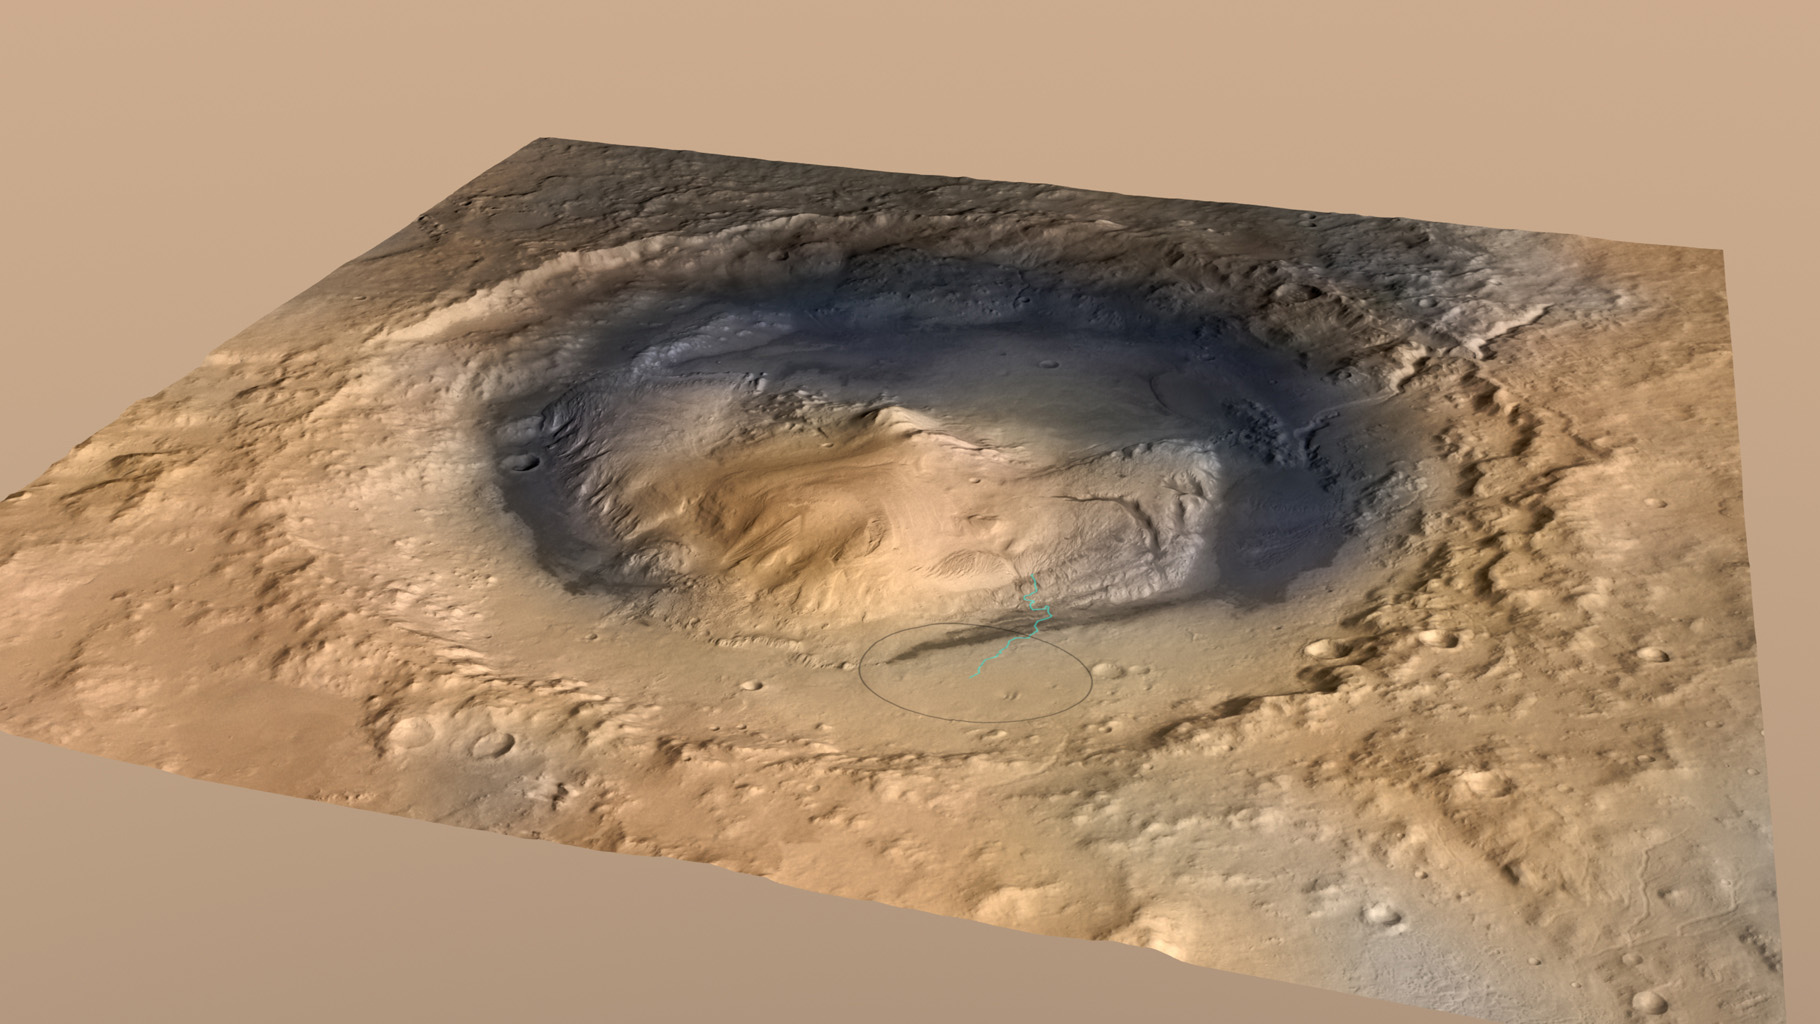 Curiosity, the big rover of NASA's Mars Science Laboratory mission, will land in August 2012 near the foot of a mountain inside Gale Crater. The mission's project science group is calling the mountain Mount Sharp.